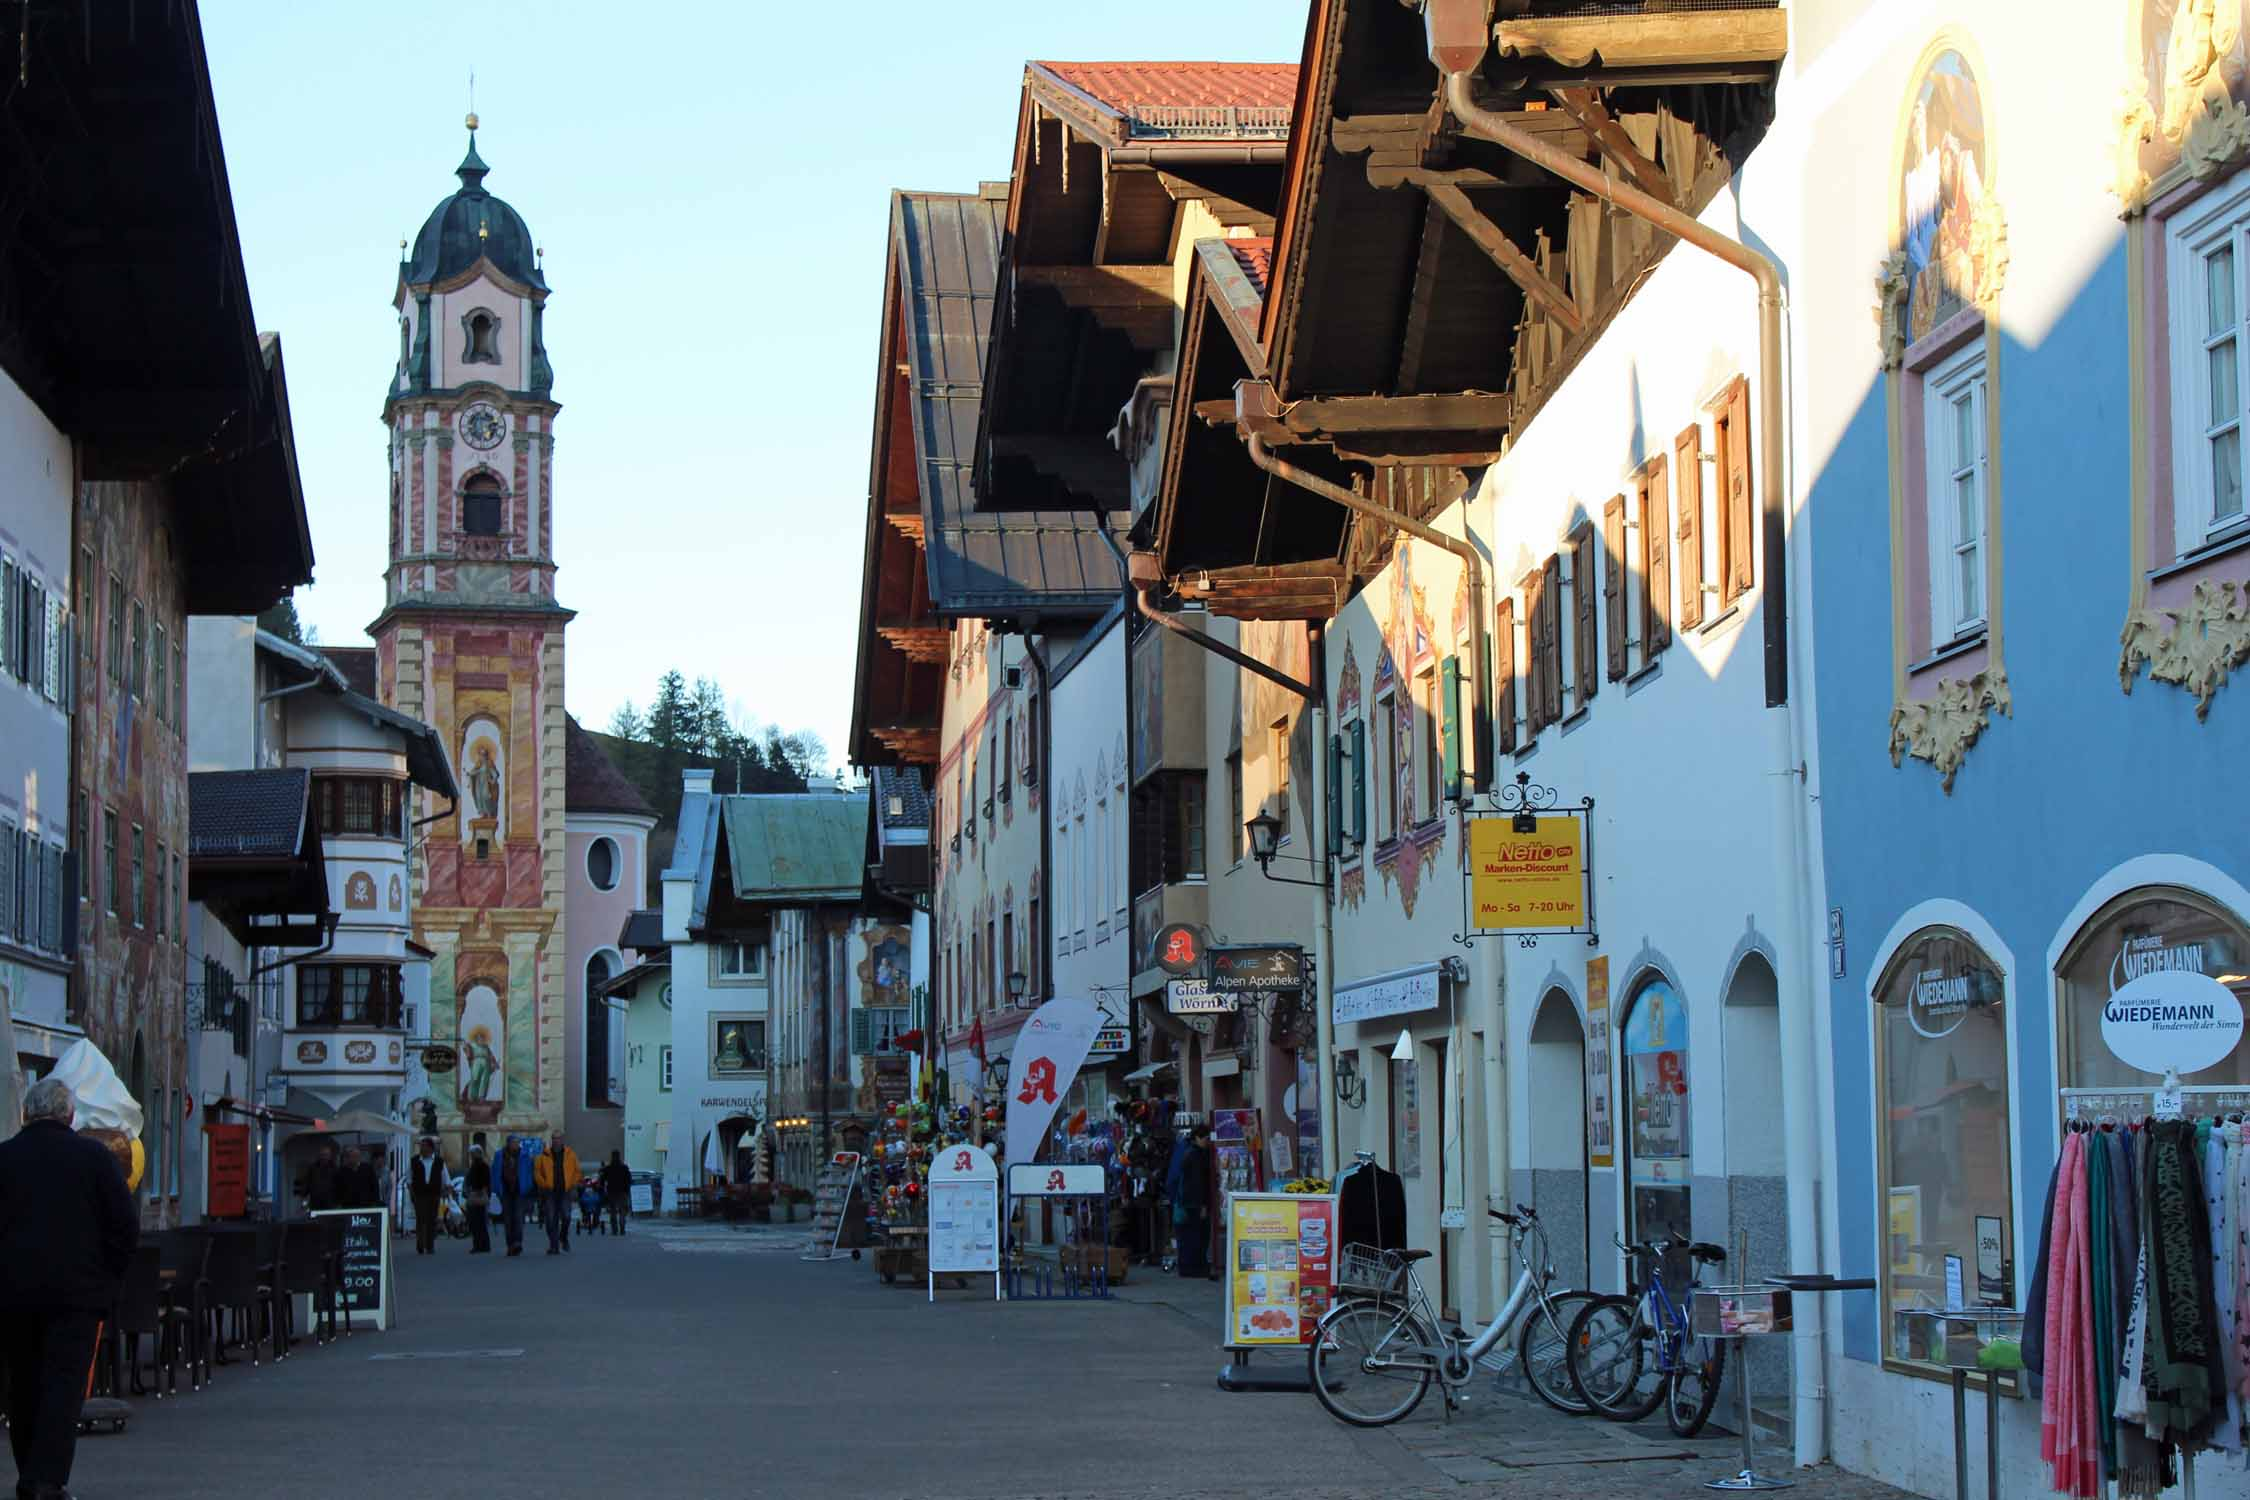 The main street of Mittenwald